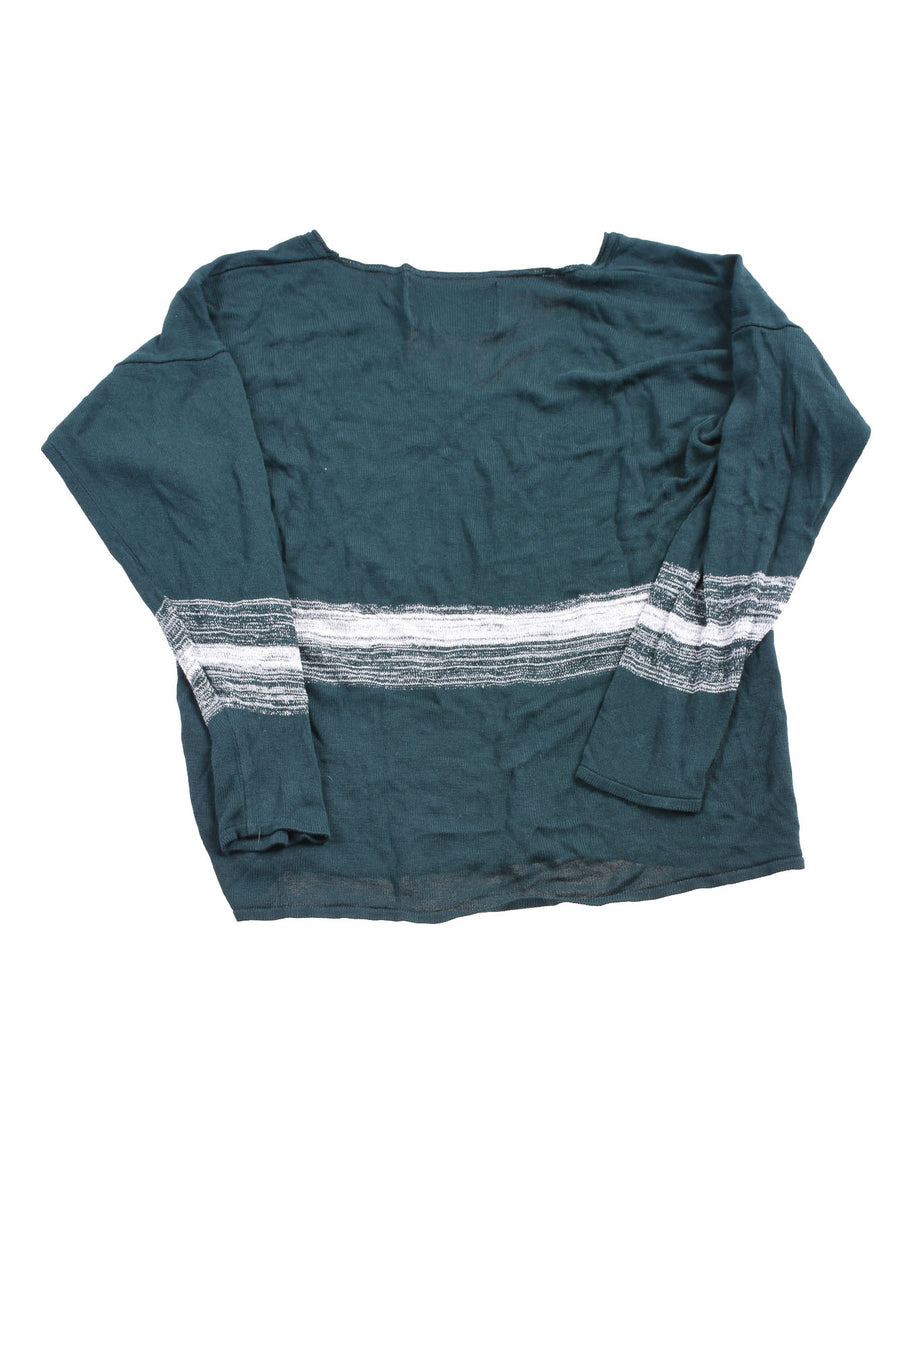 USED M. Rena Women's Shirt Large Dark Green